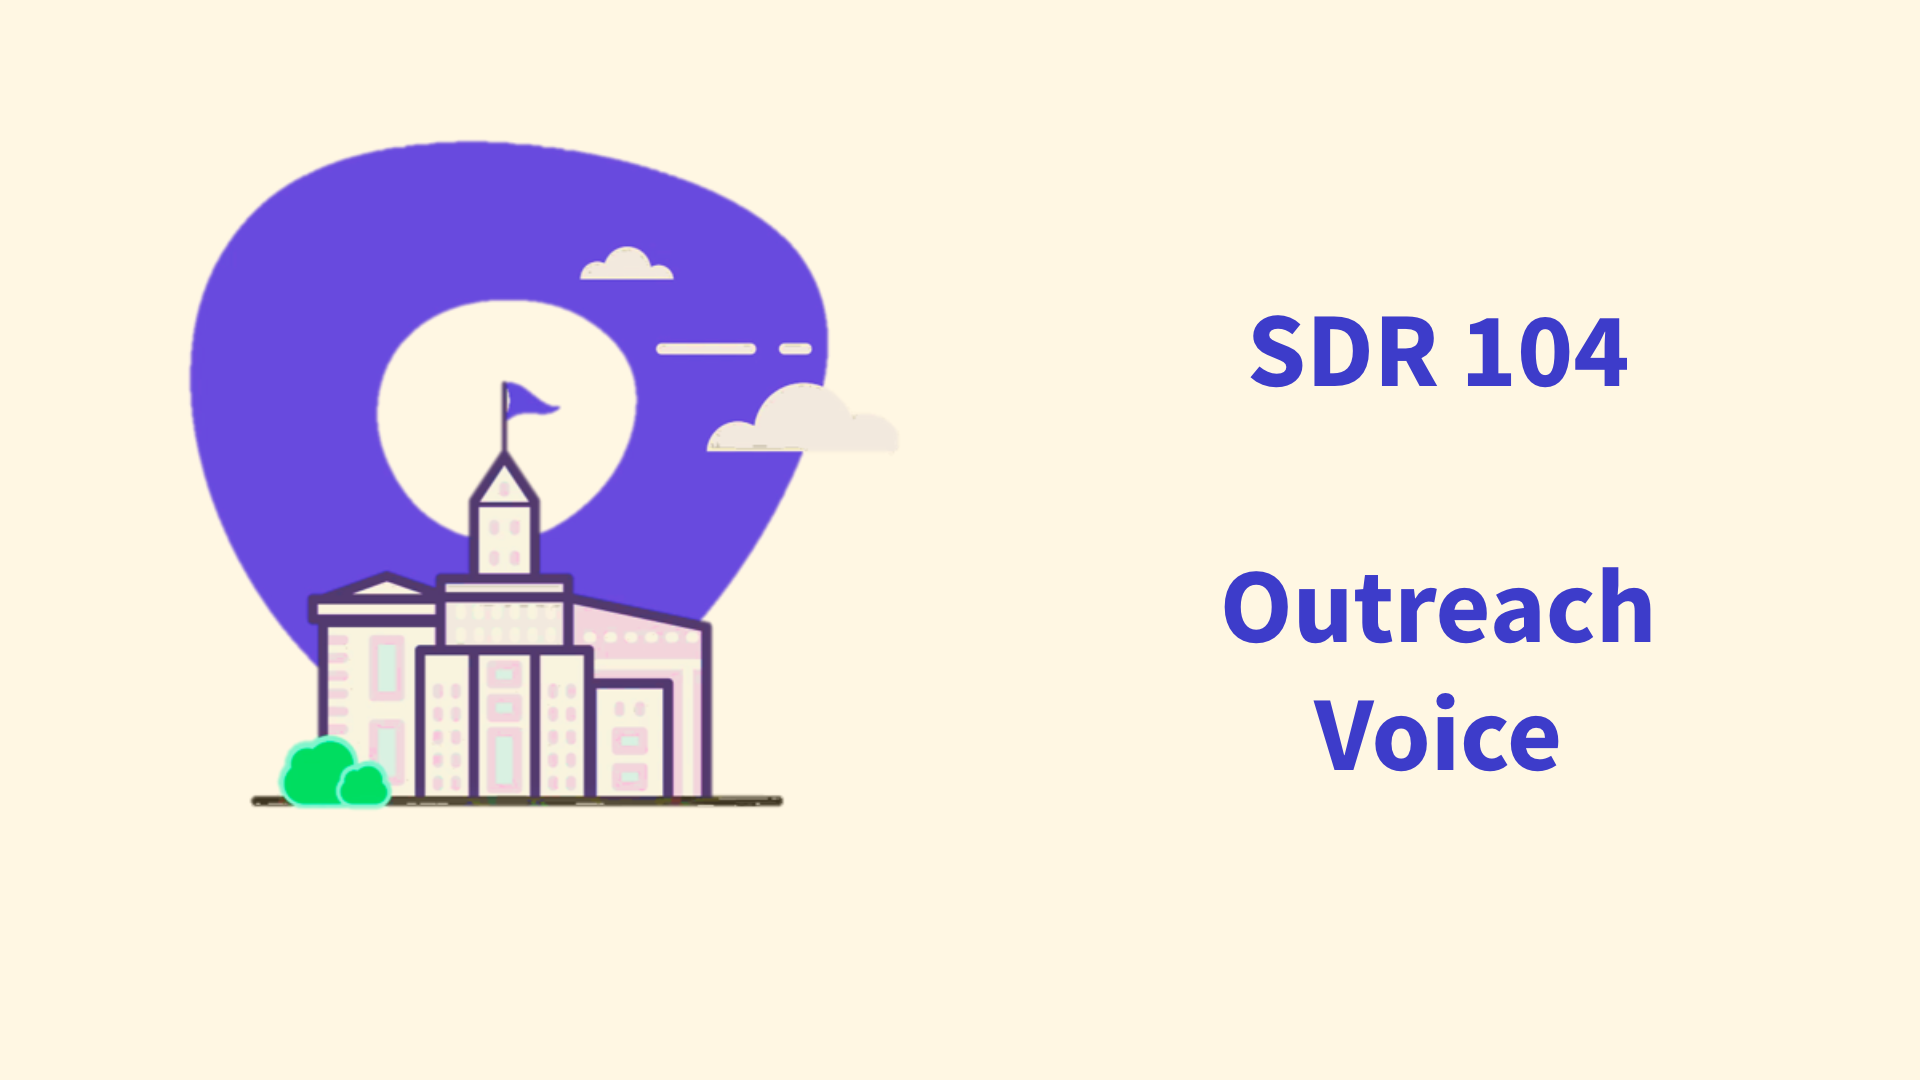 SDR 104 - Outreach Voice